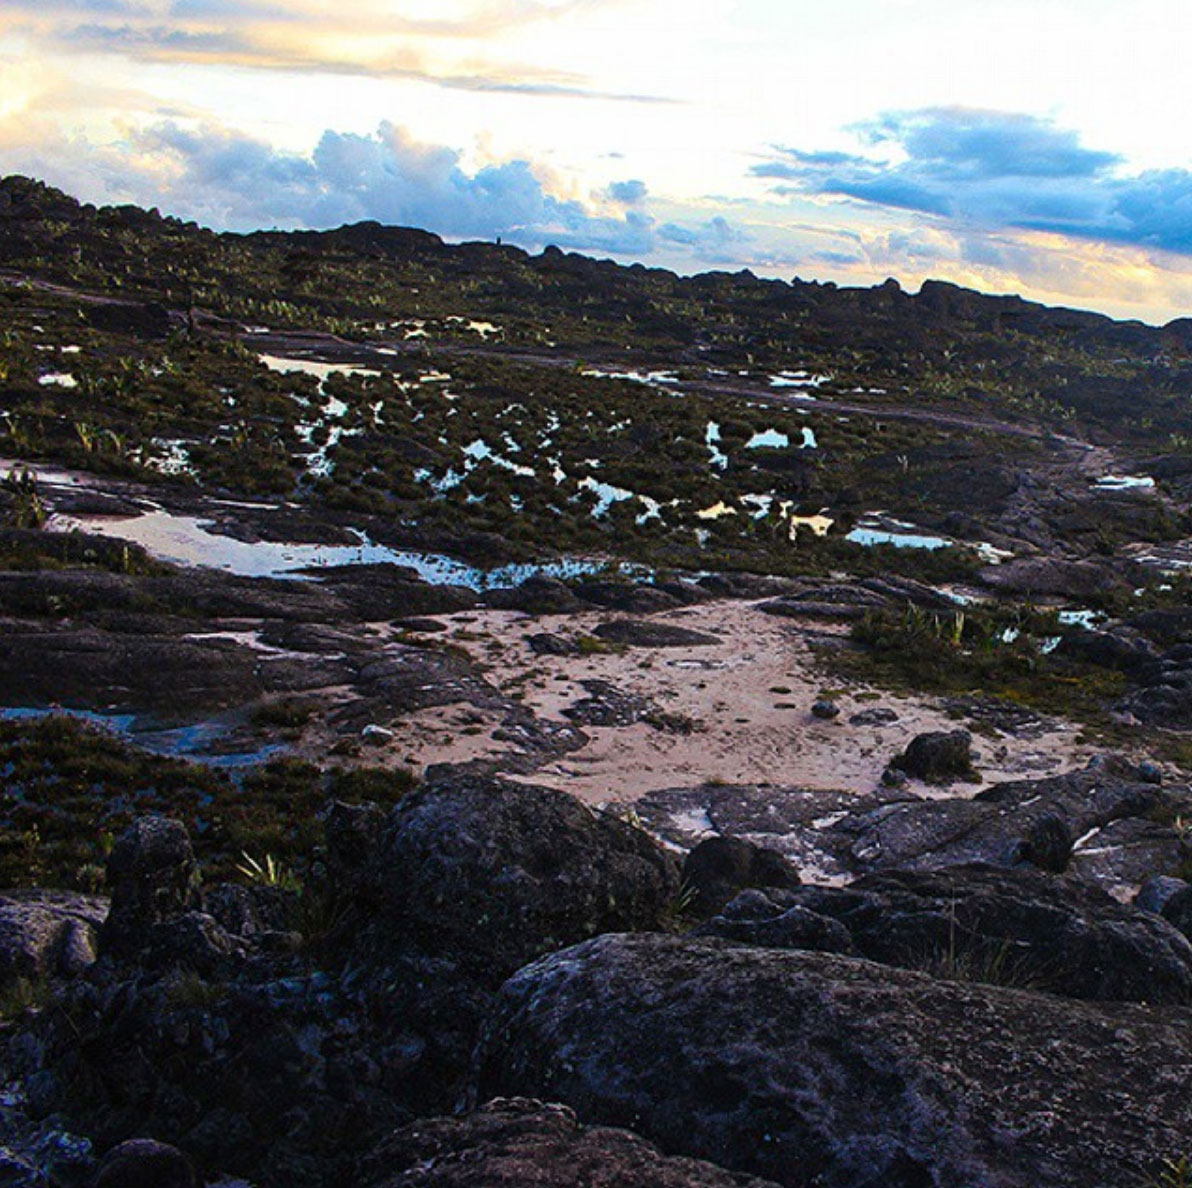 View of the top of the Roraima at sunset